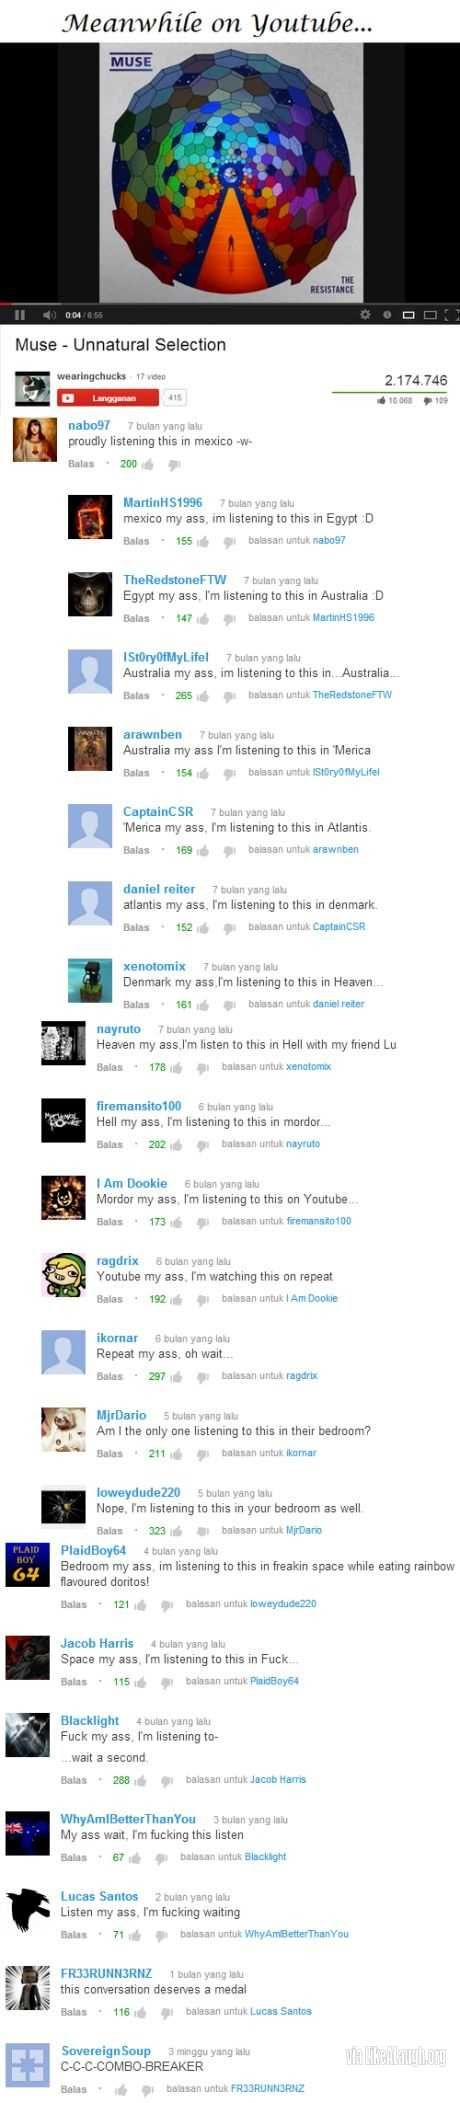 Meanwhile on youtube...